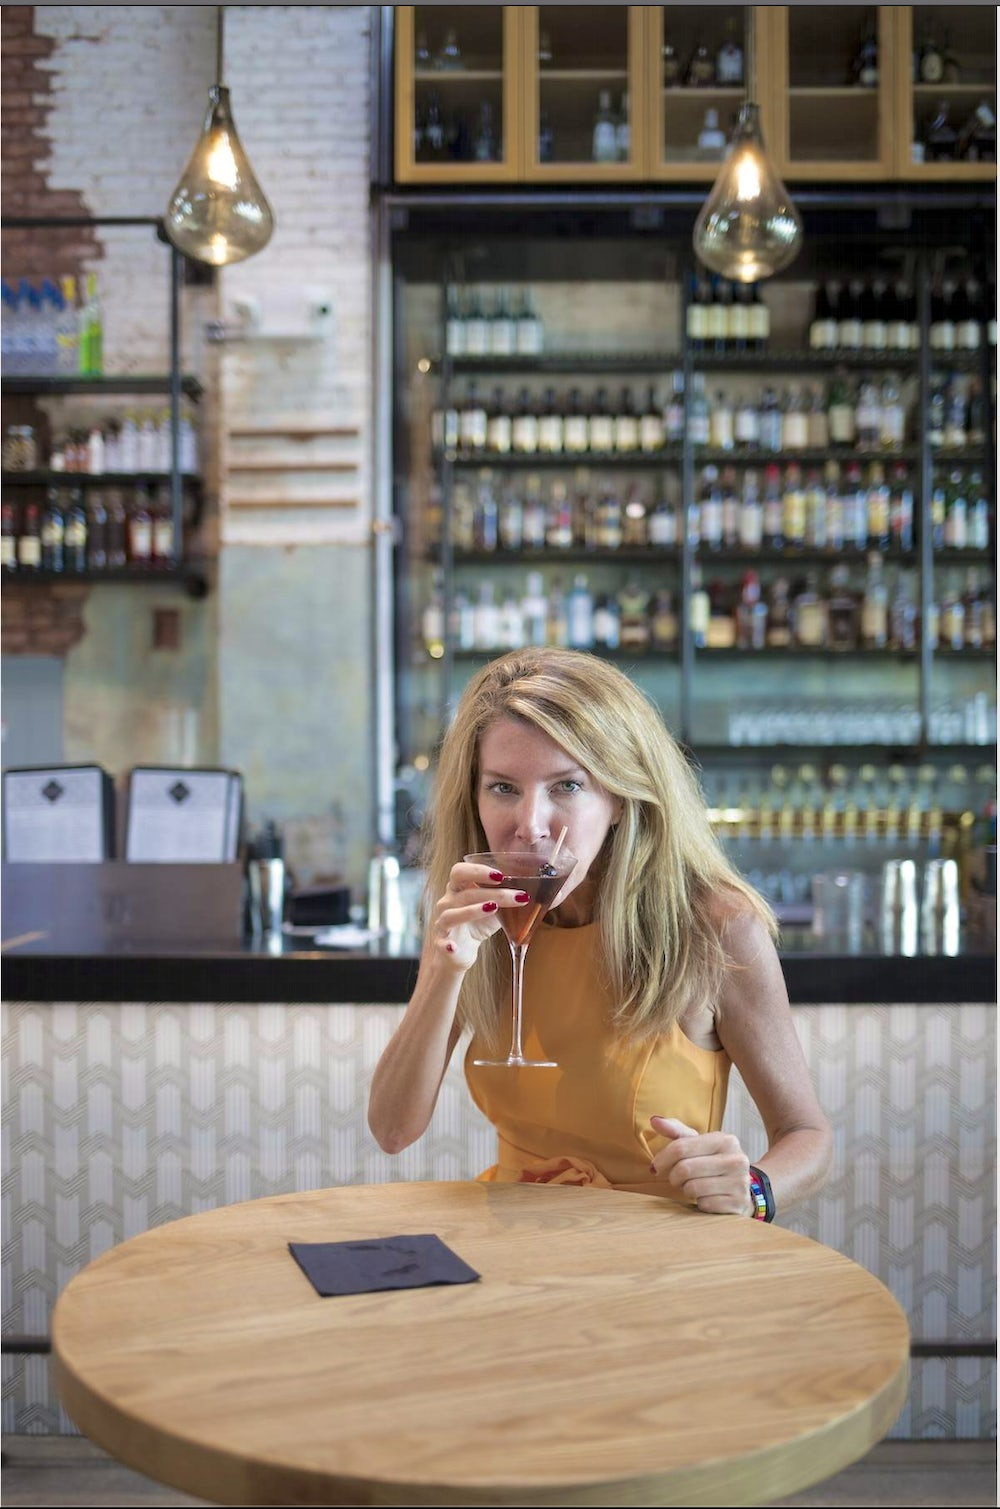 Laura Reiley sits at a bar table sipping a cocktail. She is wearing a yellow dress and looking directly into the camera over the rim of her glass.